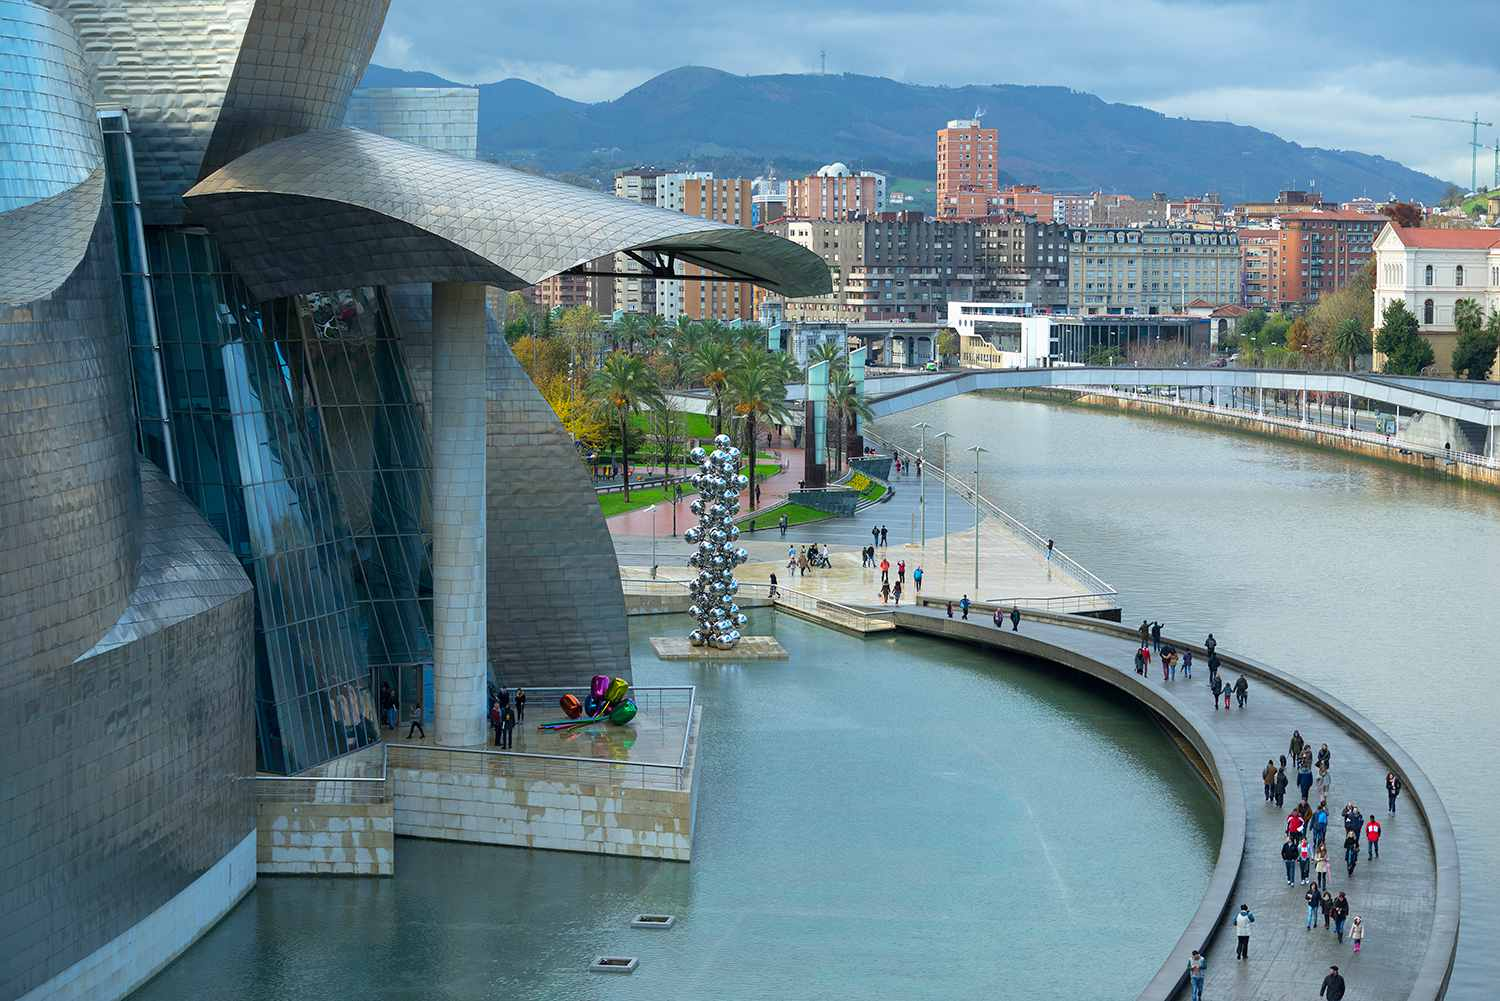 Aerial view of tourists on walkway over urban canal, Bilbao, Biscay, Spain